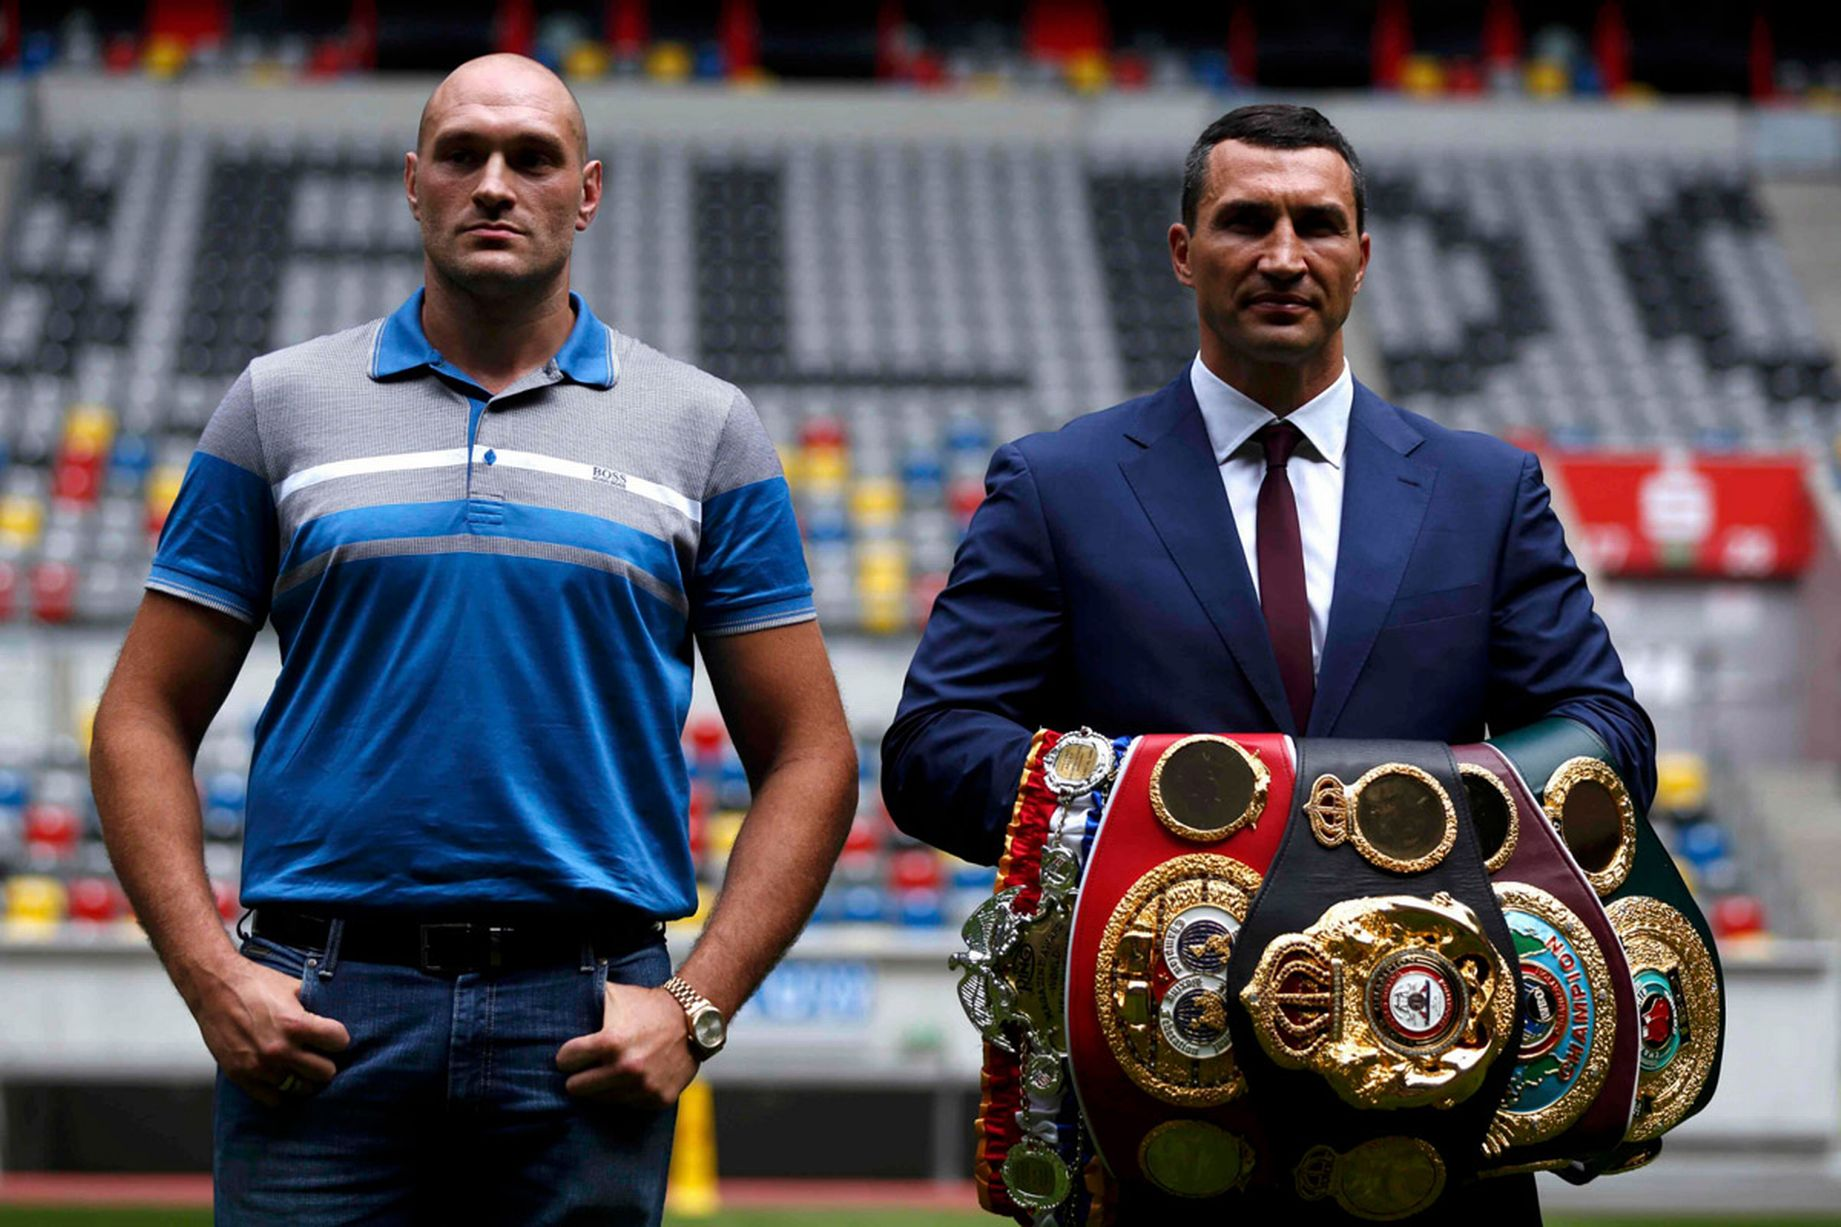 Wladimir Klitschko vs. Tyson Fury Rescheduled: New Date, Location and More